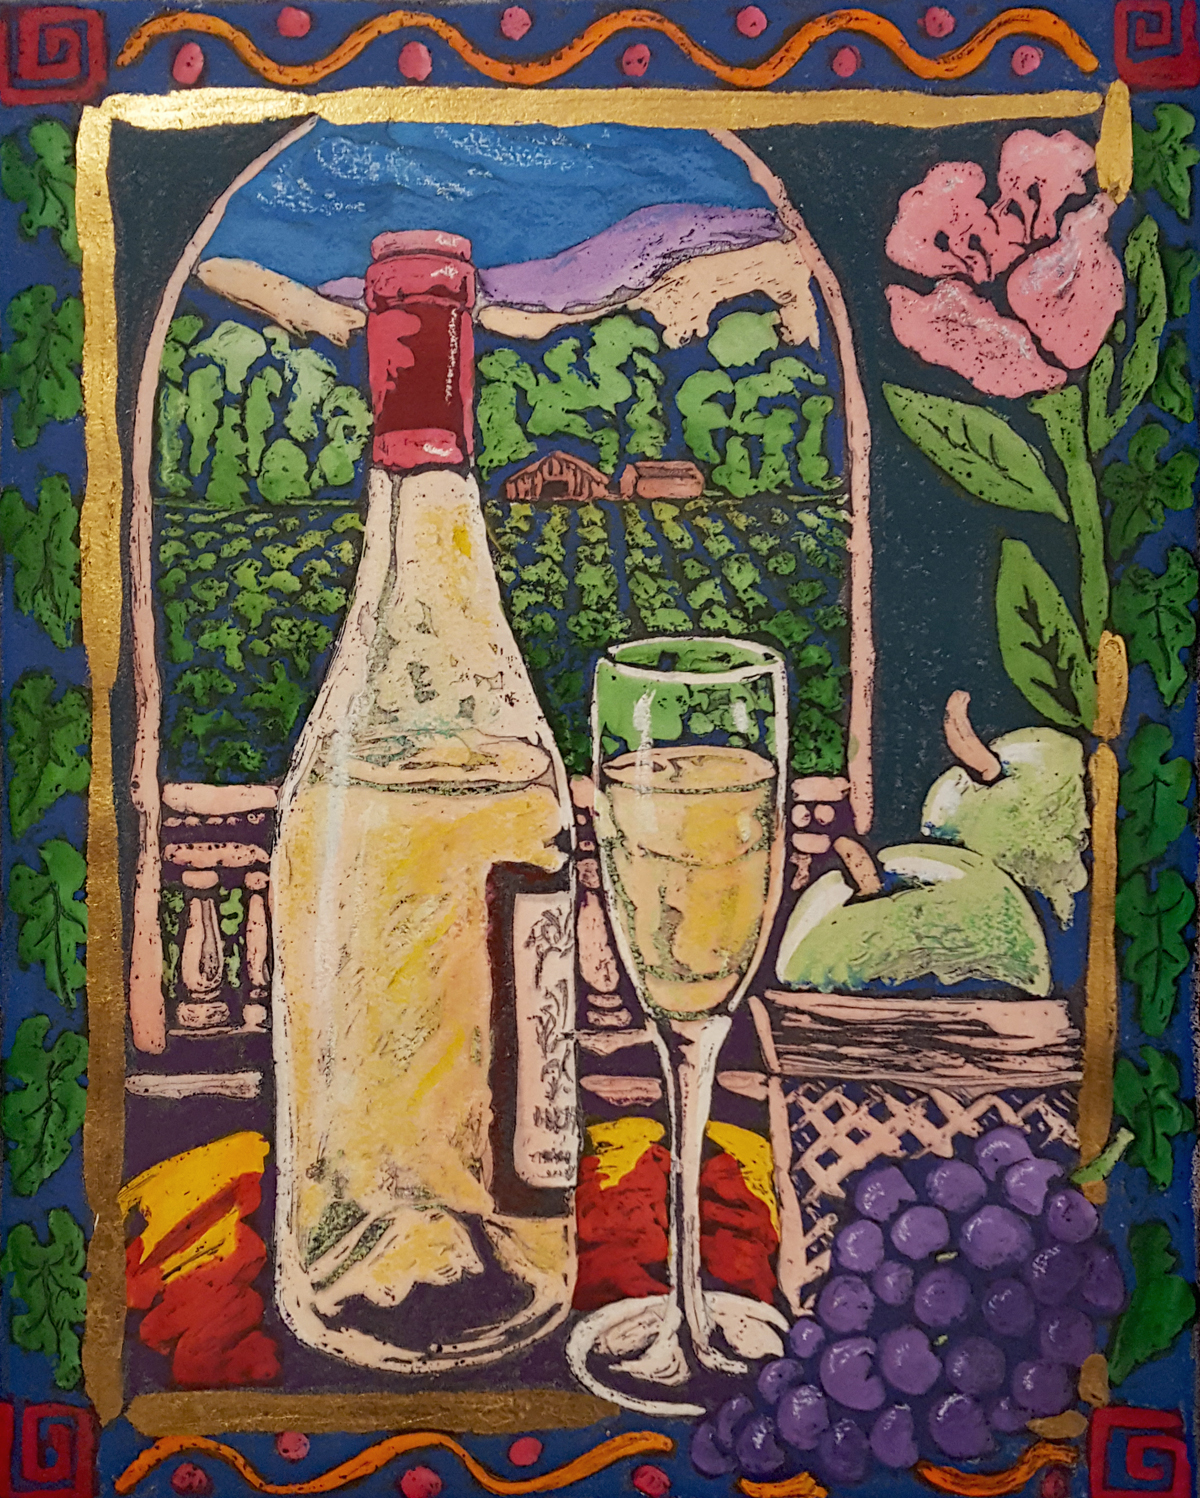 Fruit and Wine by Stephan Whittle